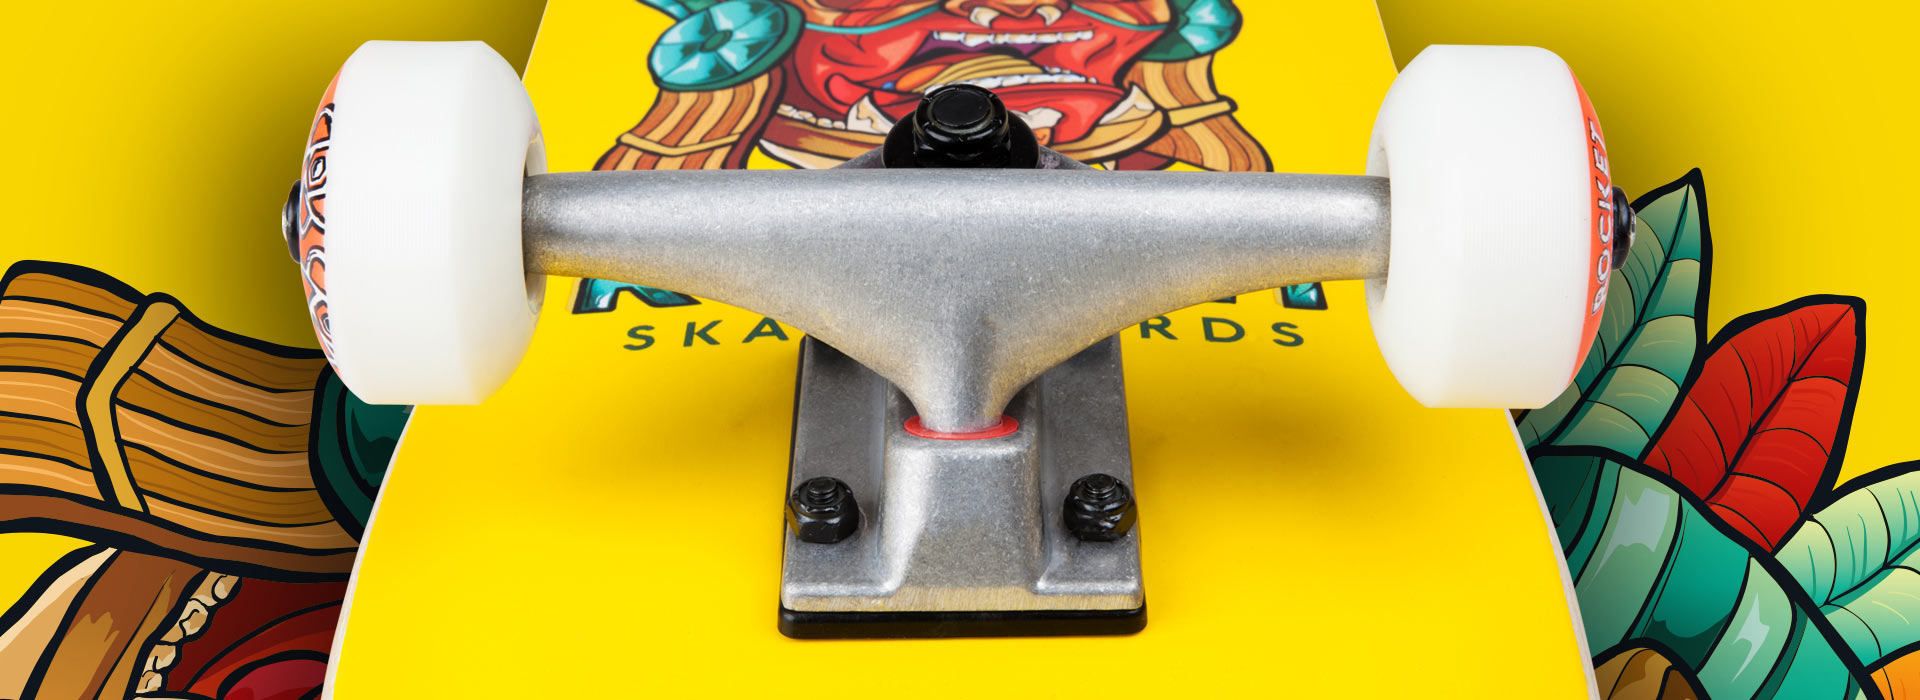 Rocket beginner skateboard complete - Mini Mask Series